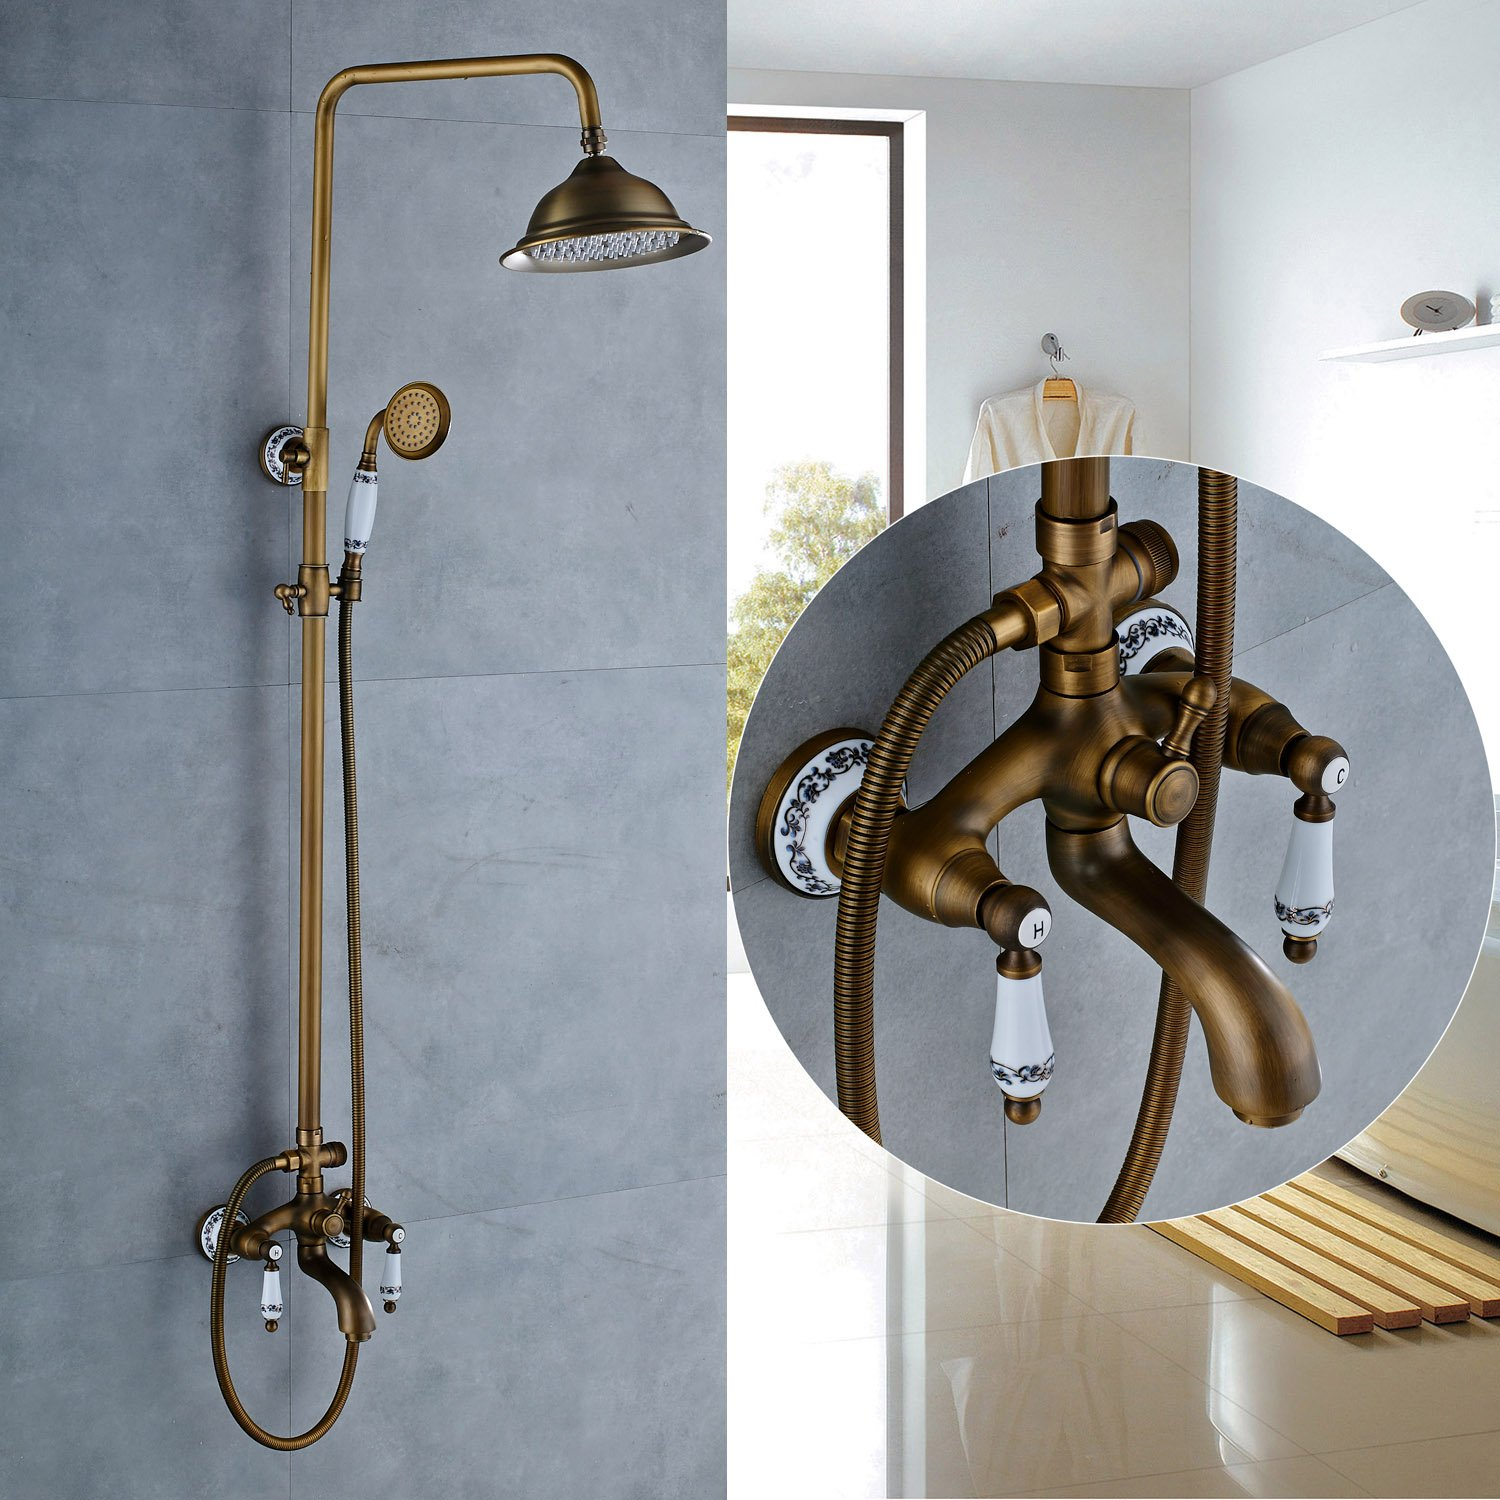 Rozin Porcelain Deco Tub Shower Faucet Set 8-inch Rainfall ...